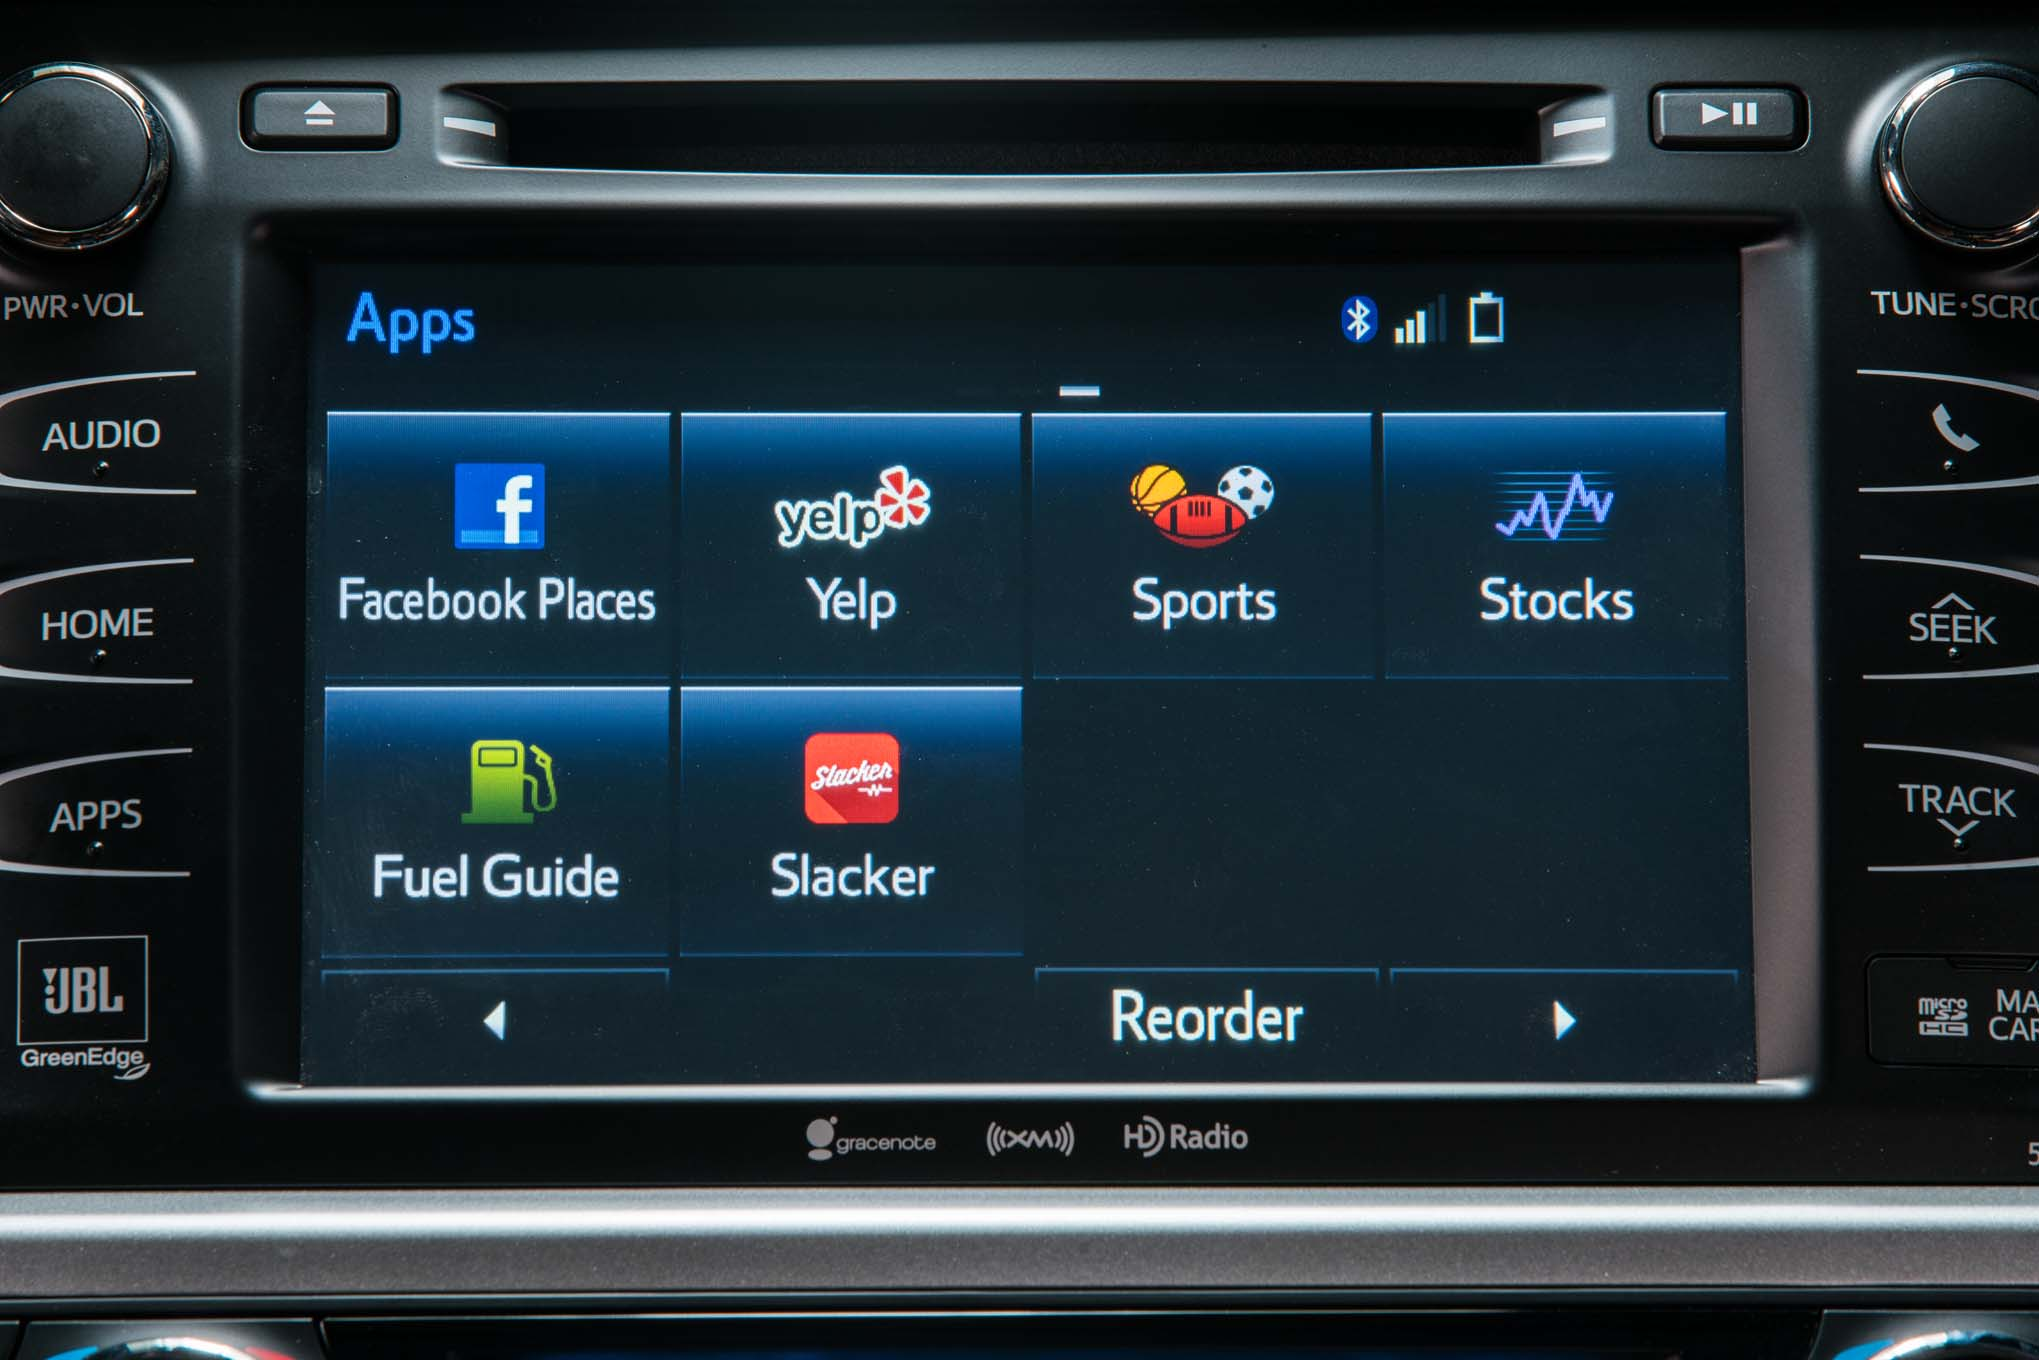 2017 Toyota Highlander Hybrid Limited Platinum app screen